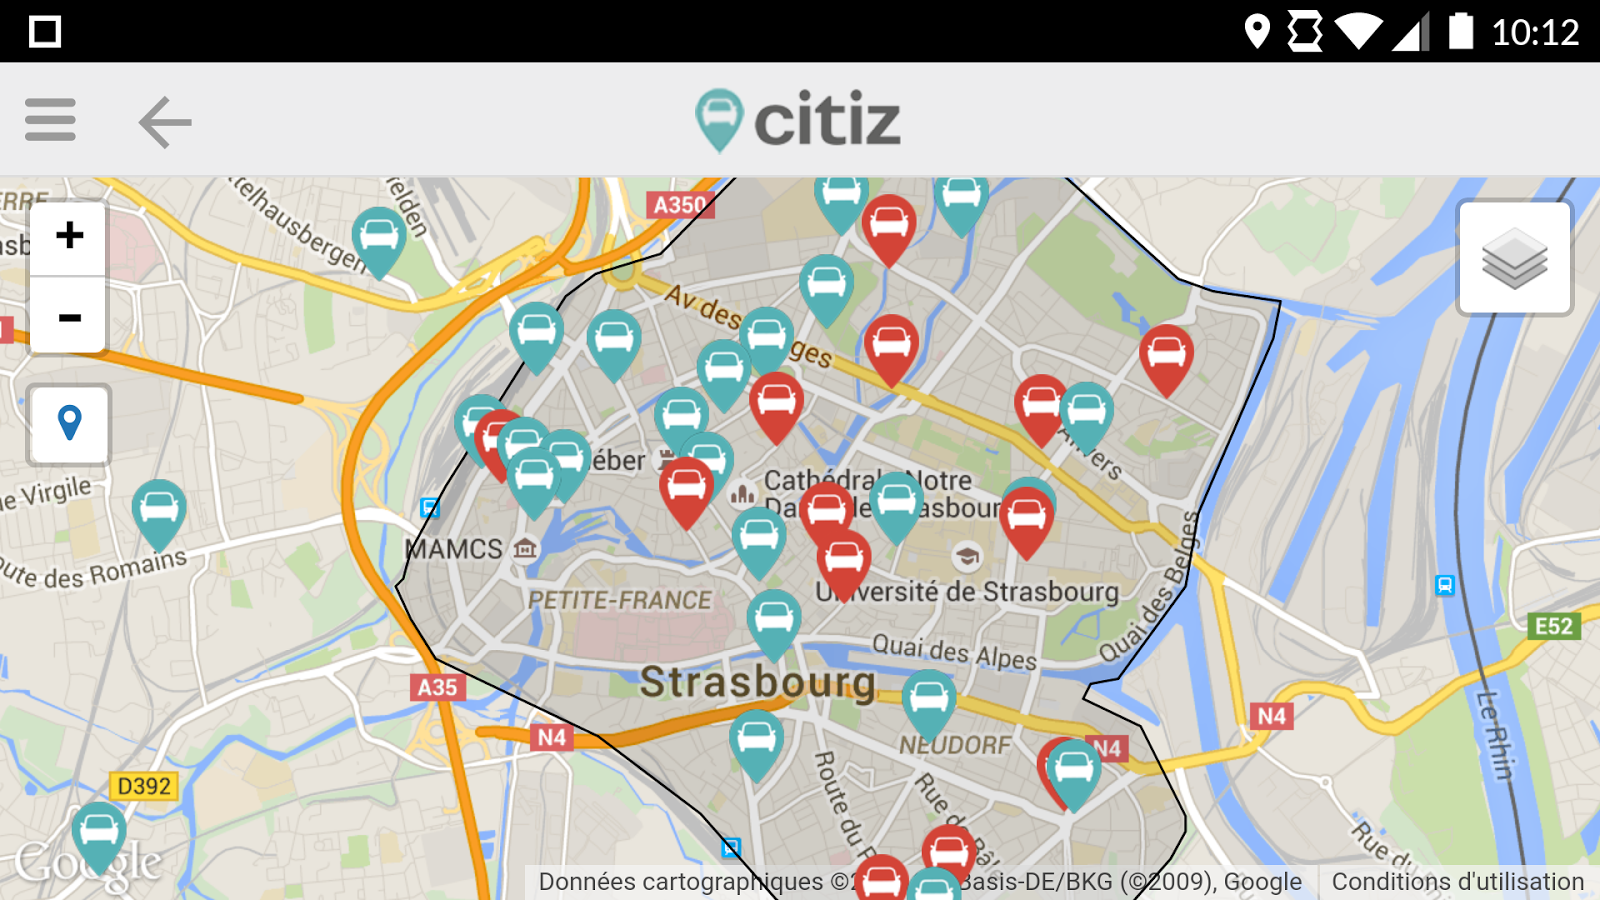 Citiz – Capture d'écran